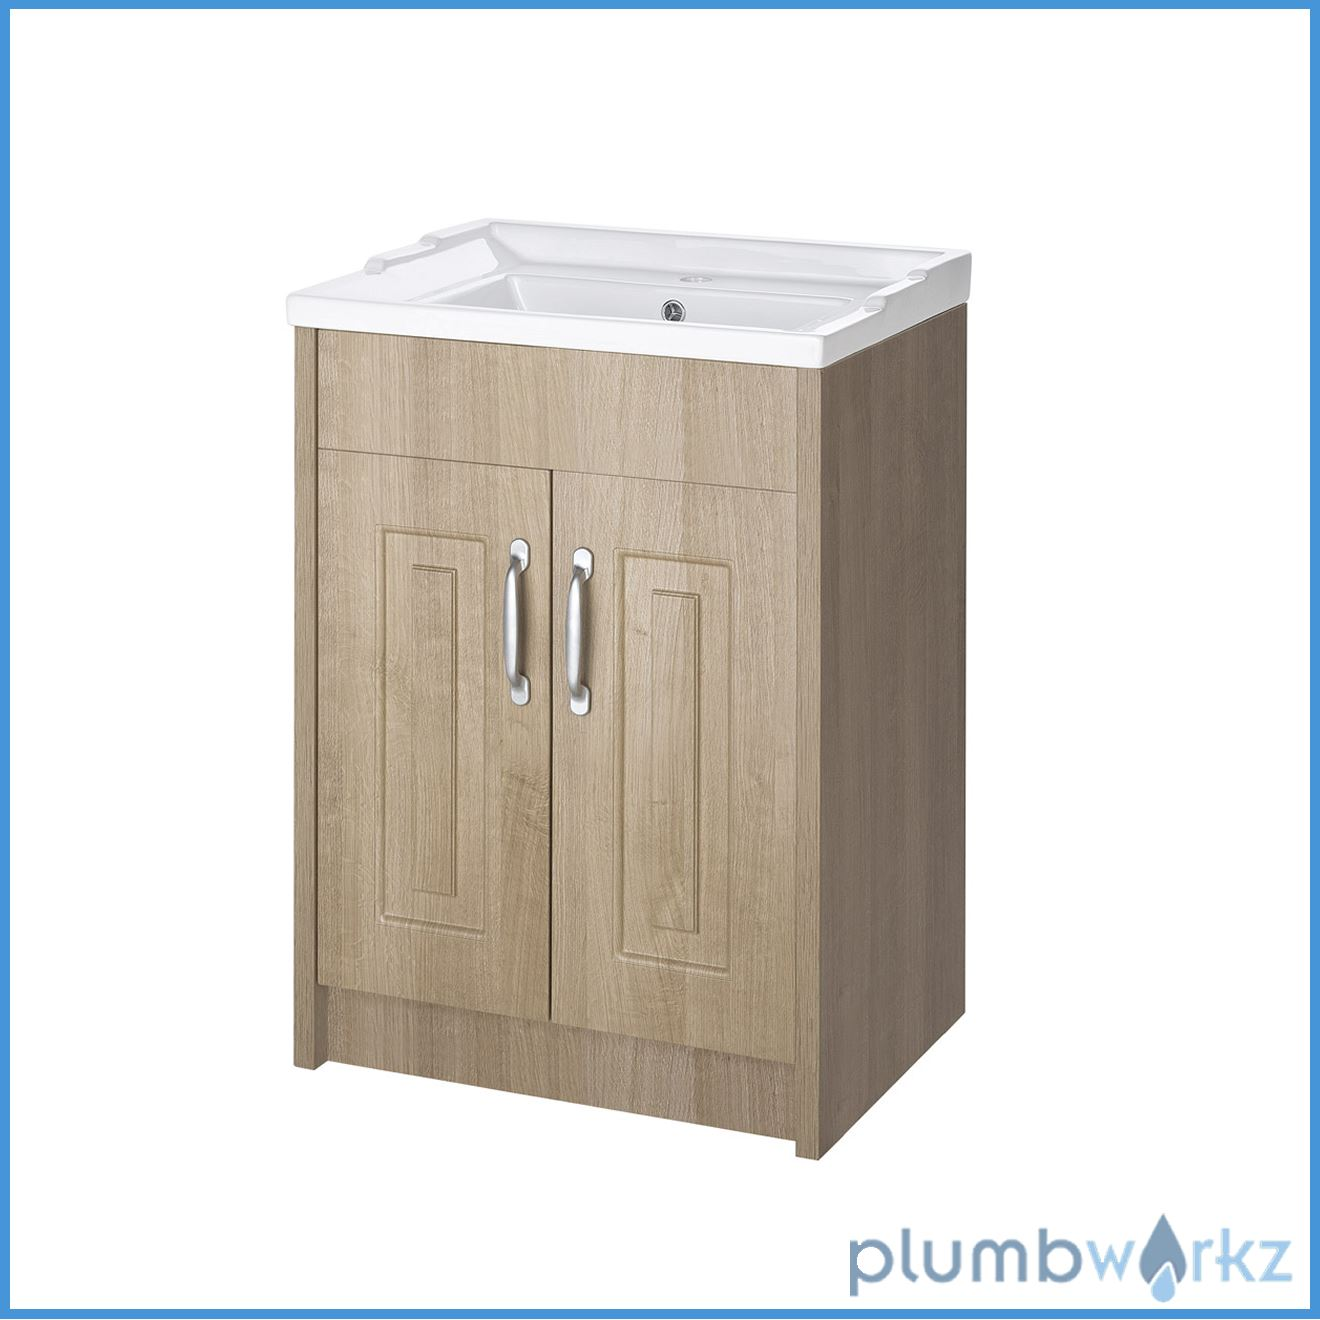 traditional back to wall btw wc pan toilet cabinet basin vanity unit ebay. Black Bedroom Furniture Sets. Home Design Ideas